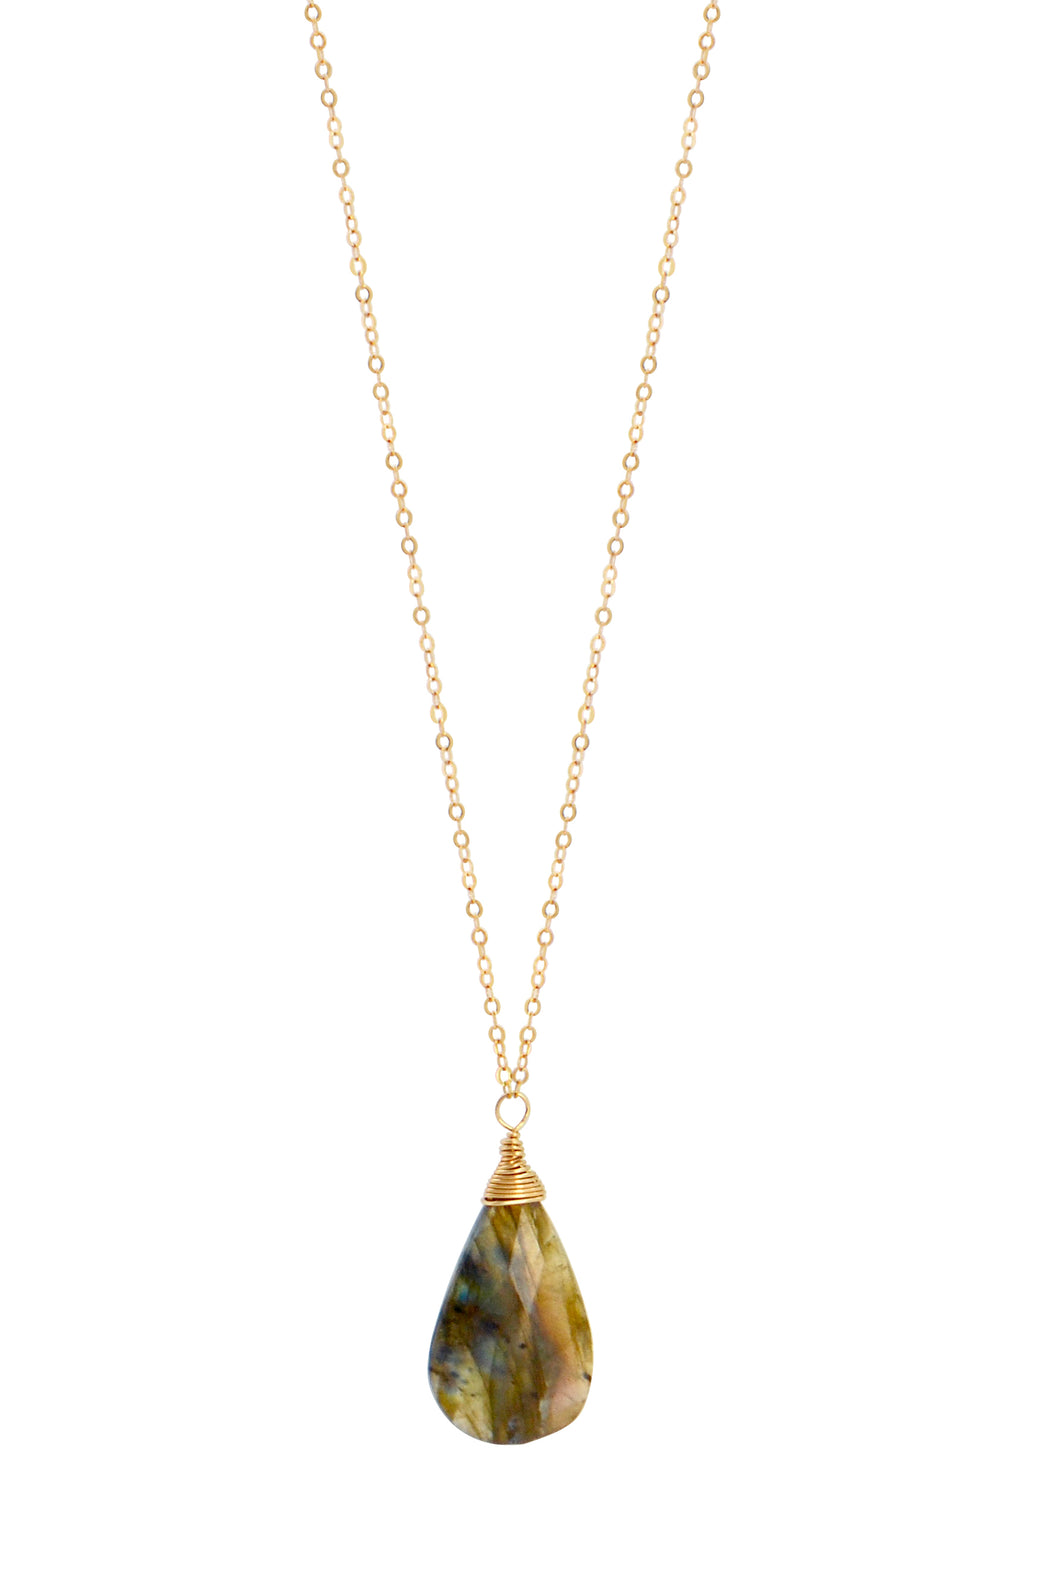 The Long Gemstone Drop Necklace - Labradorite